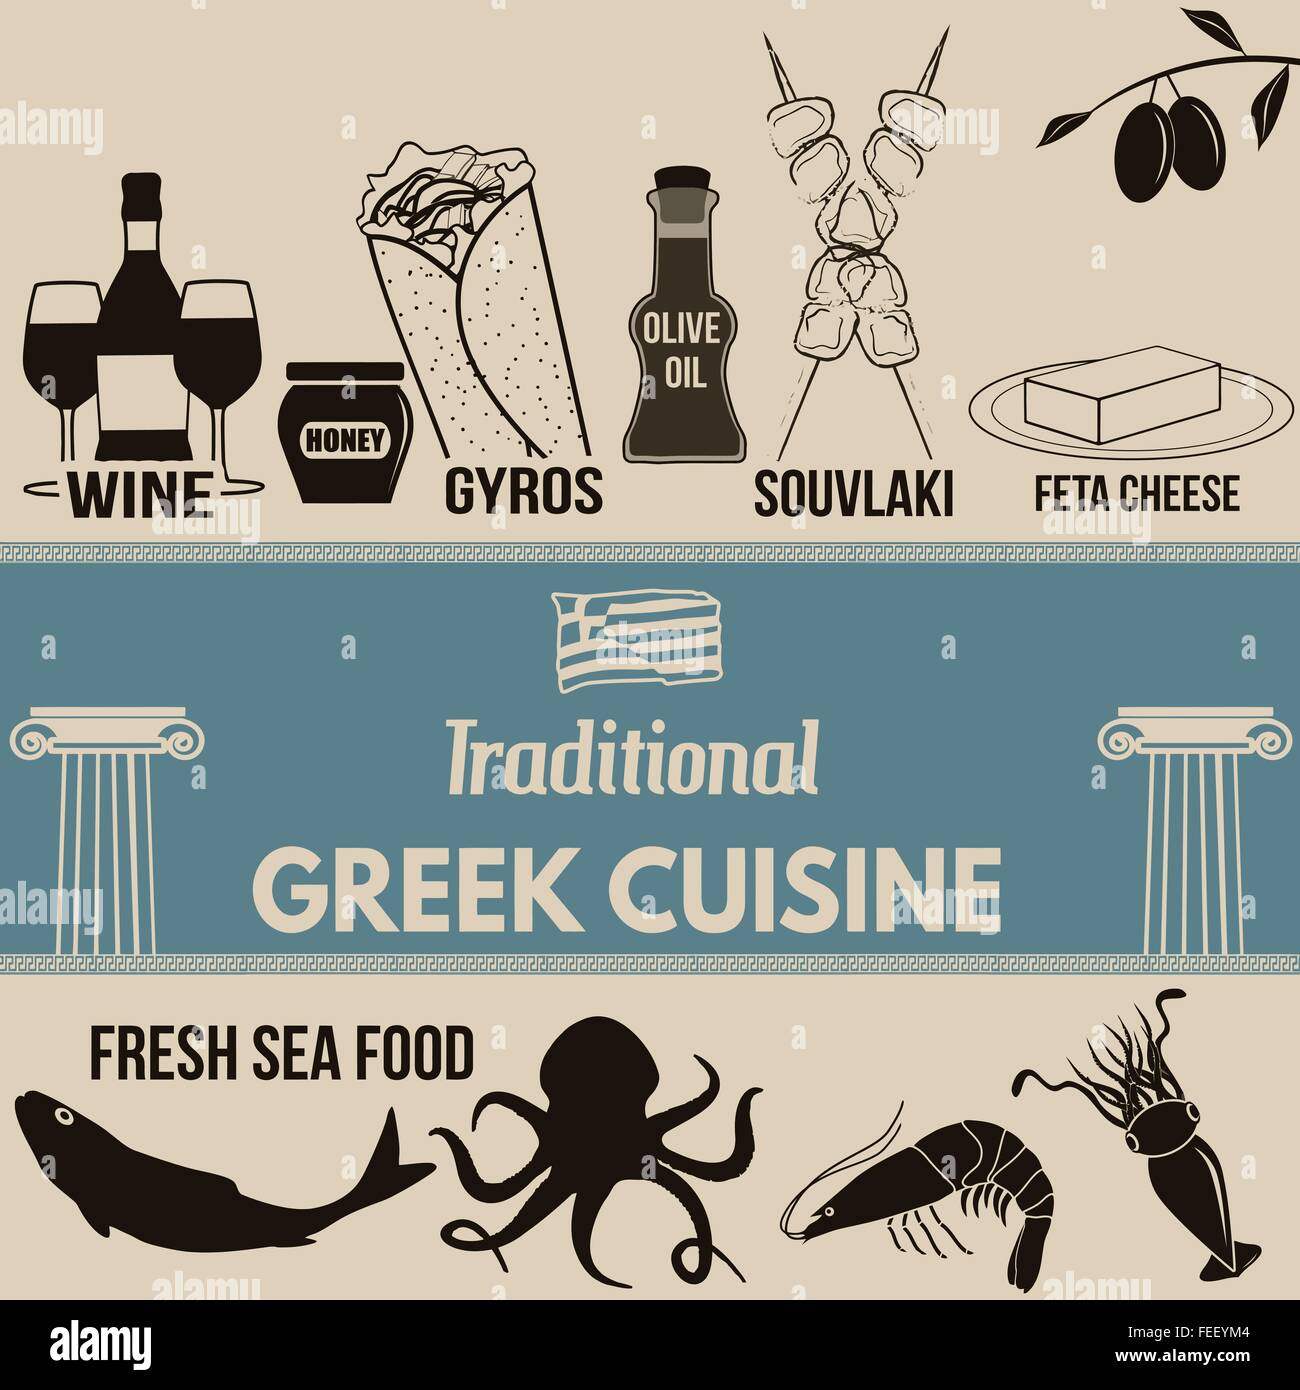 Traditional greek cuisine poster with greek food elements on retro background , vector illustration - Stock Vector